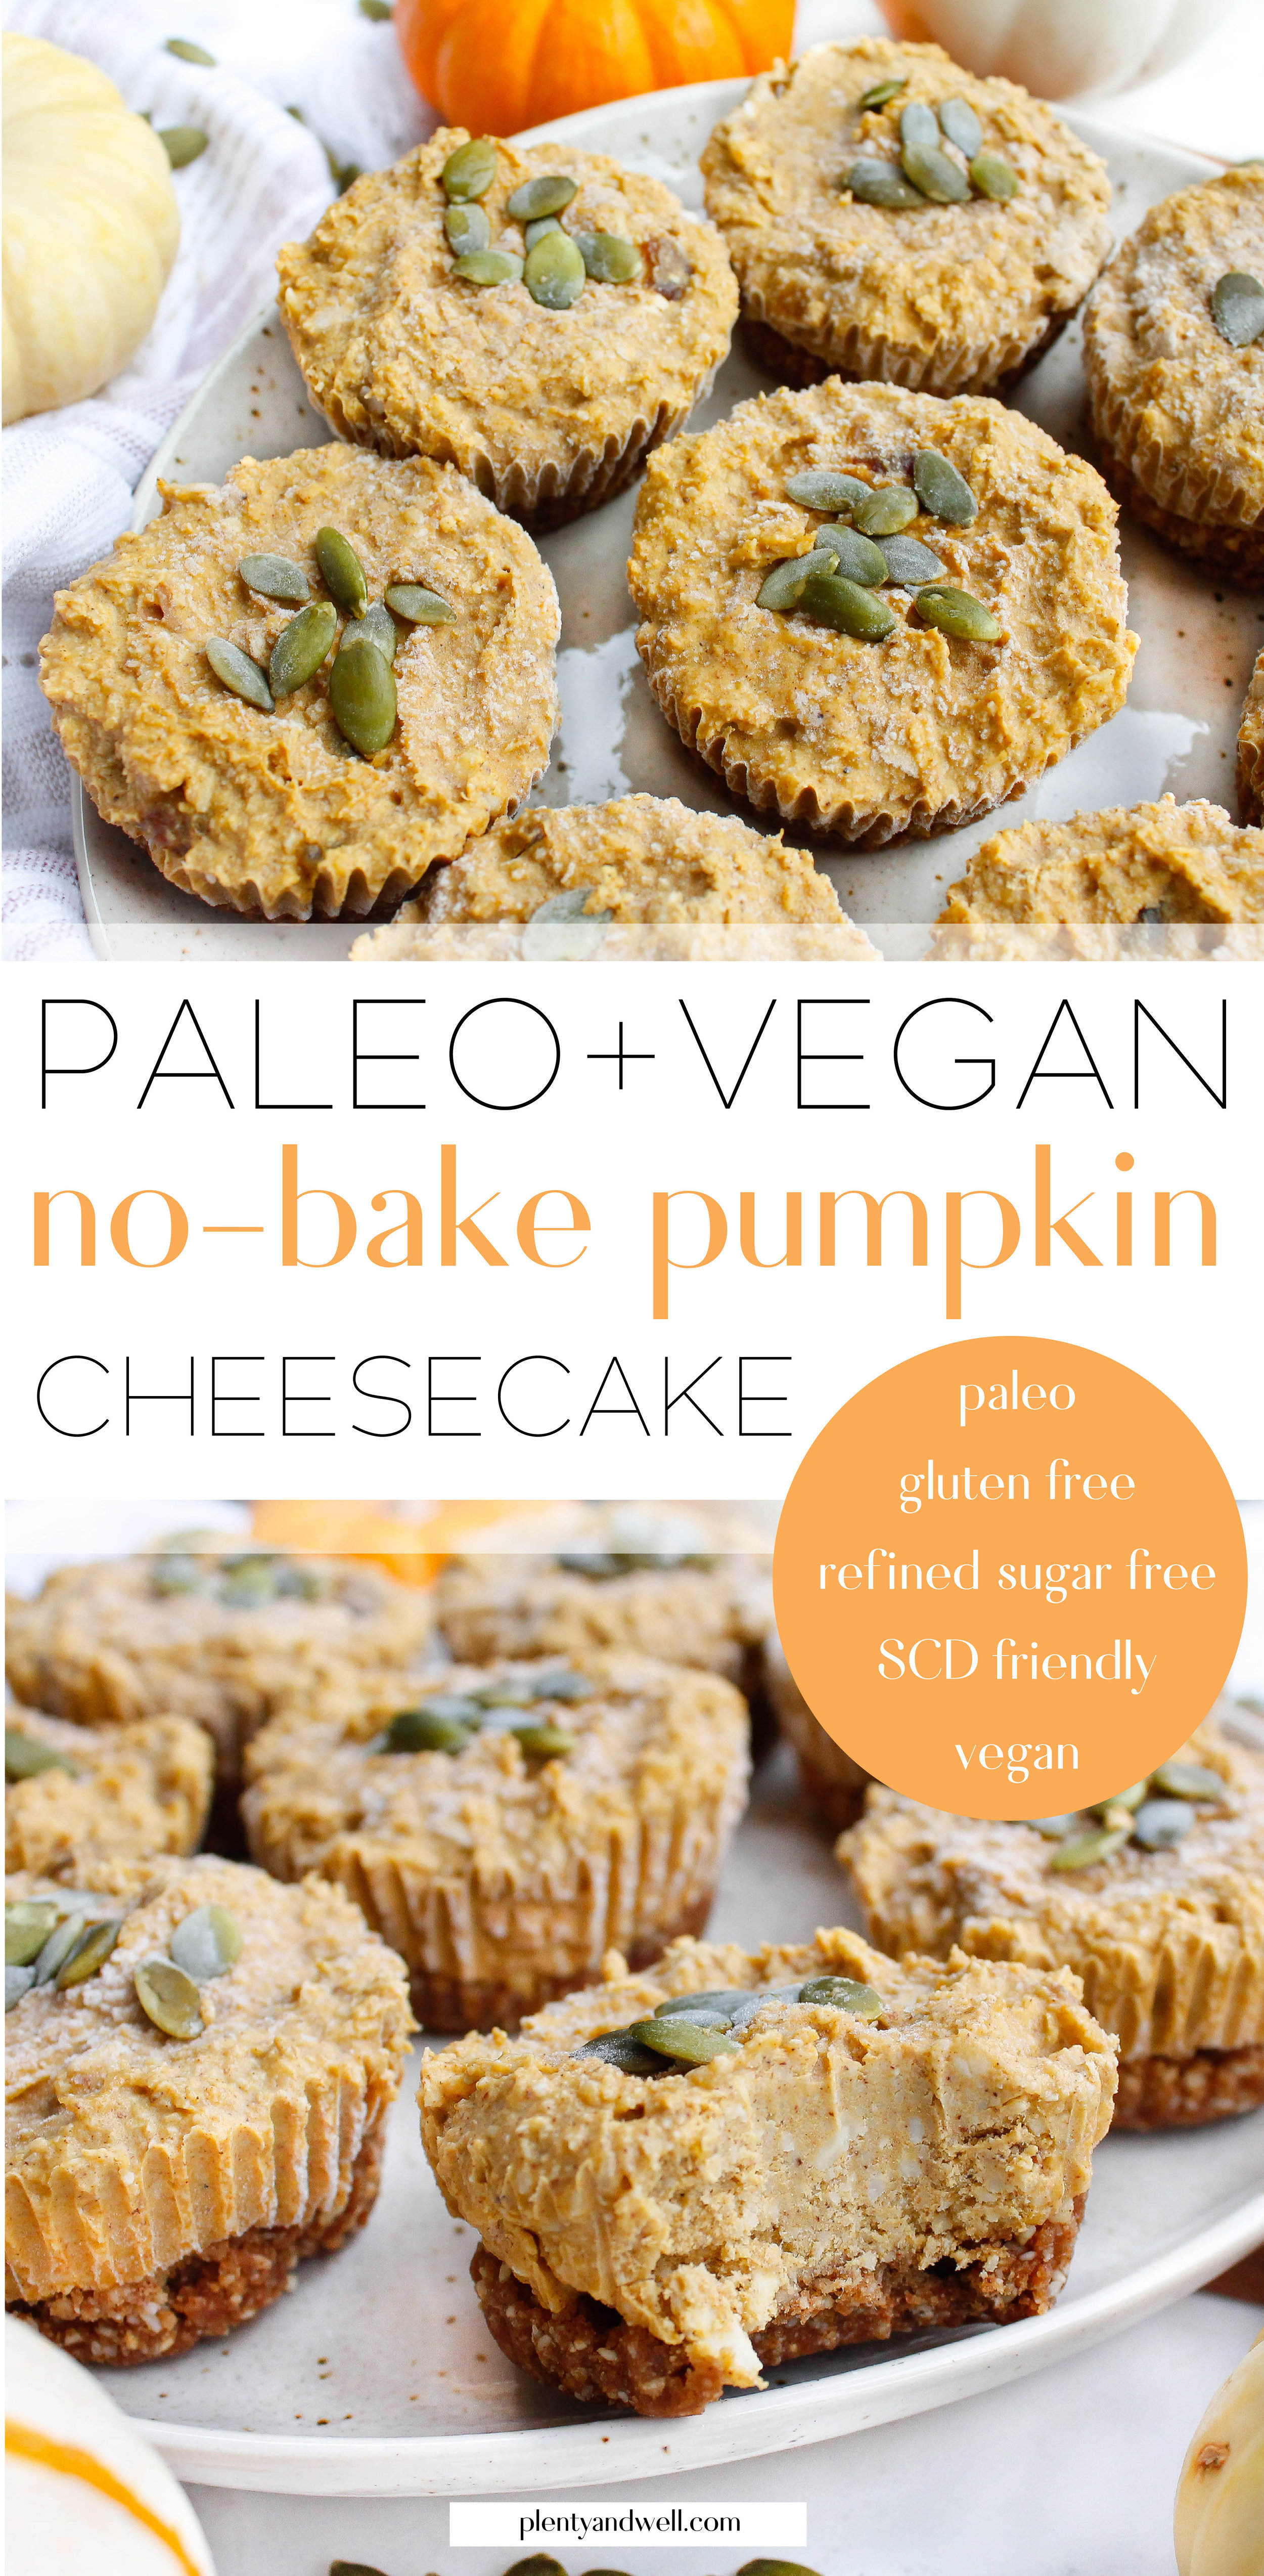 These paleo pumpkin cheesecake bites are the perfect way to say goodbye to pumpkin season! They're also vegan if you sub the honey for maple syrup and they're refined sugar free, grain free, gluten and dairy free and specific carbohydrate diet friendly! They're the perfect healthy, allergy-free holiday dessert. Click through for the recipe! #paleobaking #paleocheesecake #vegancheesecake #specificcarbohydratediet